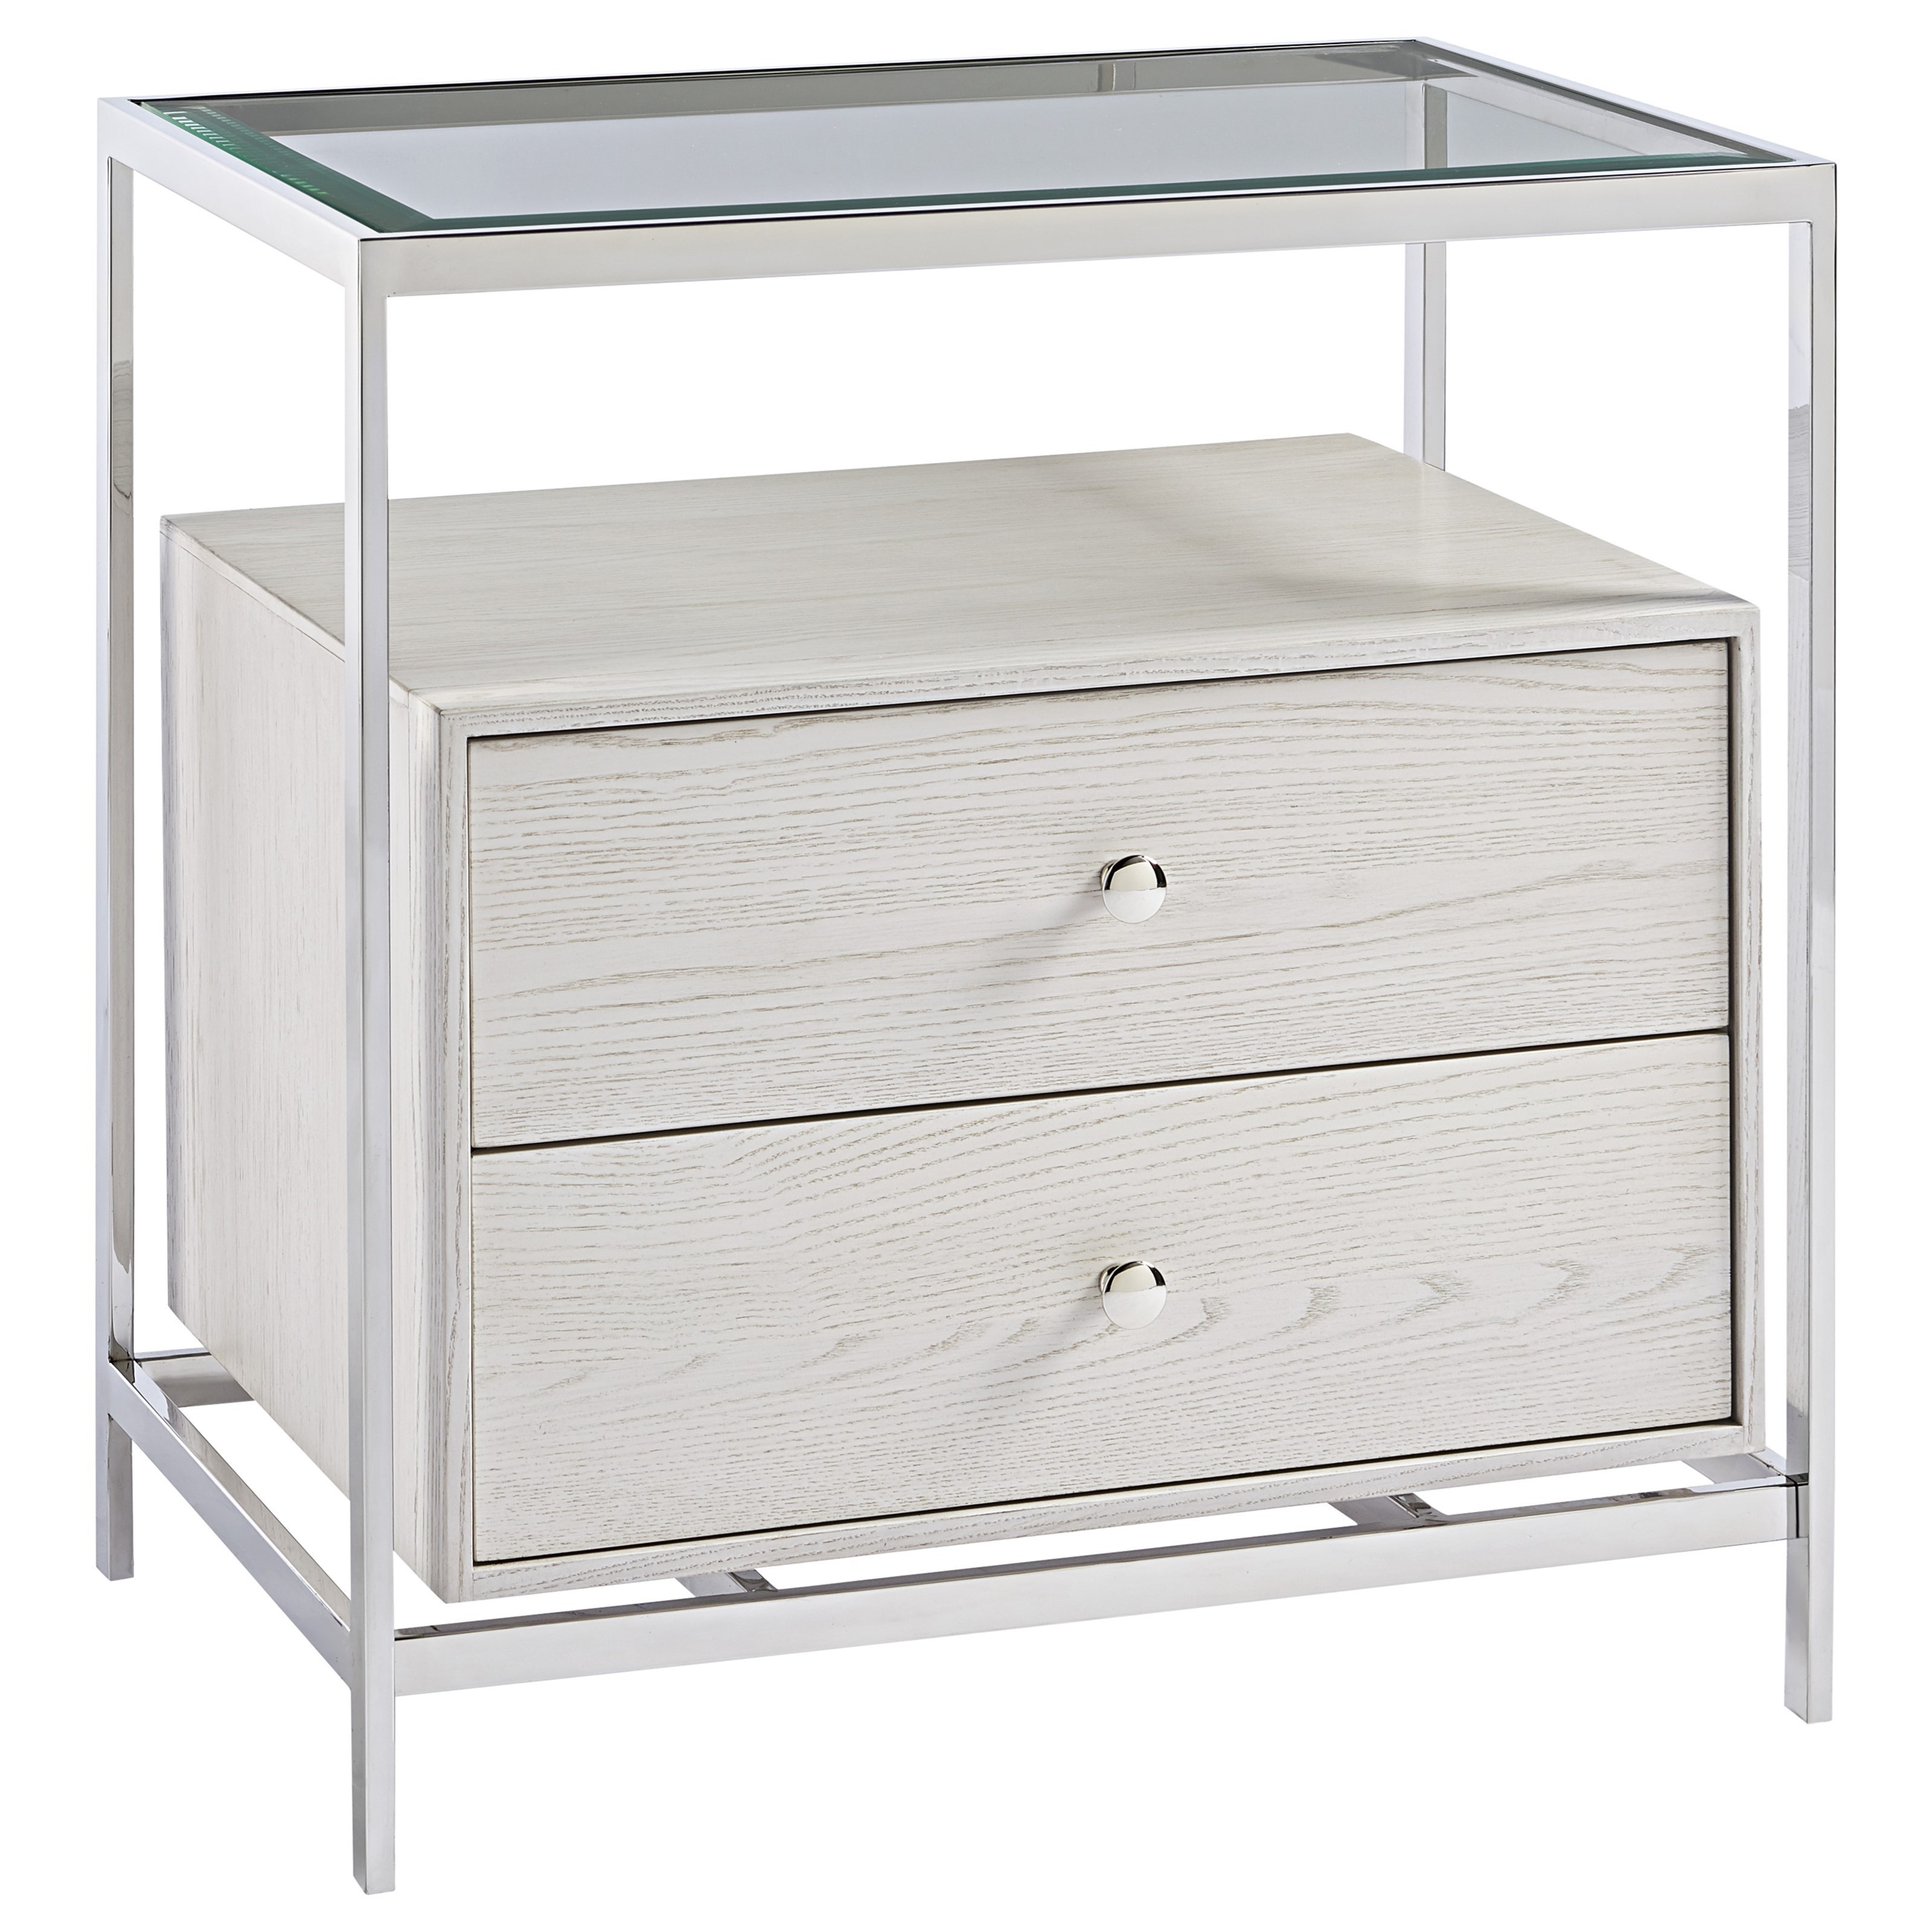 Paradox Nightstand by Universal at Baer's Furniture